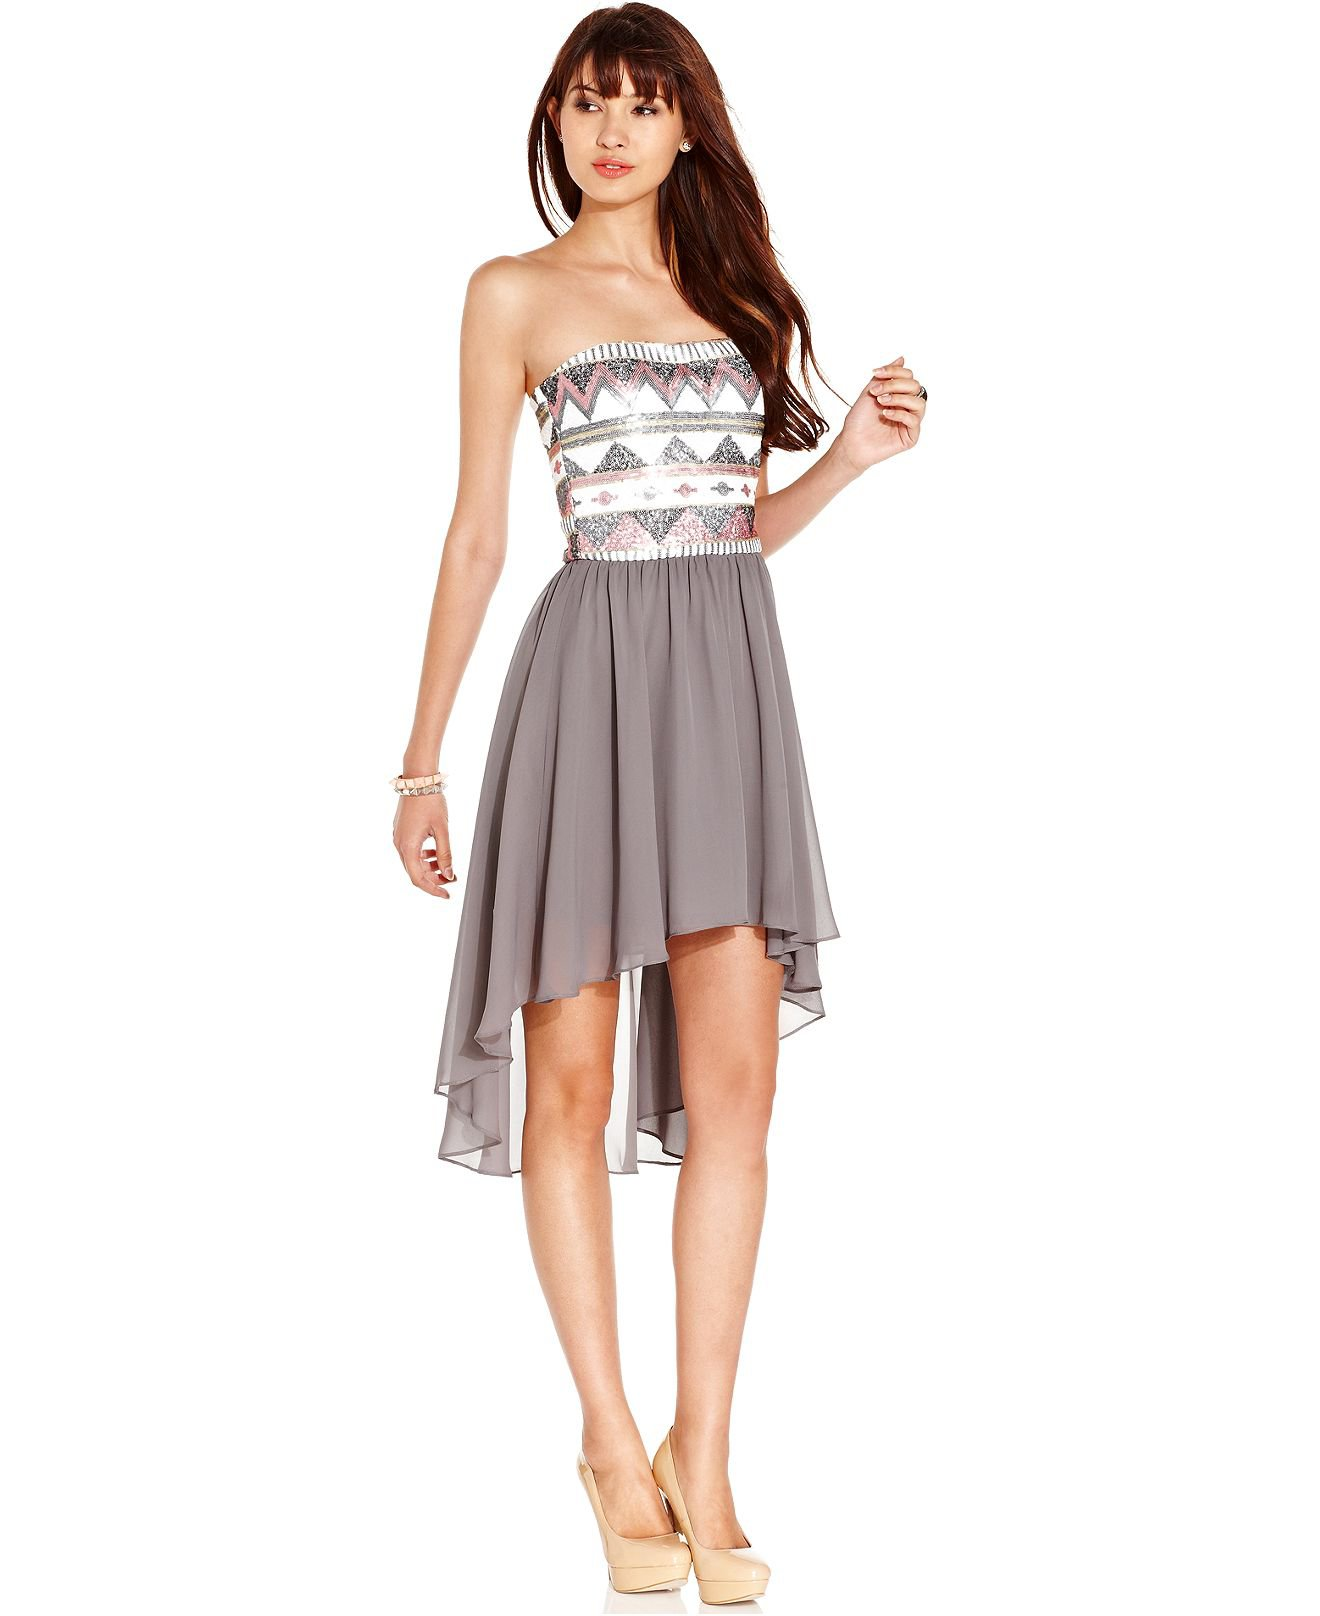 ... Dress, Strapless Sequin High-Low - Juniors Homecoming Dresses - Macy's